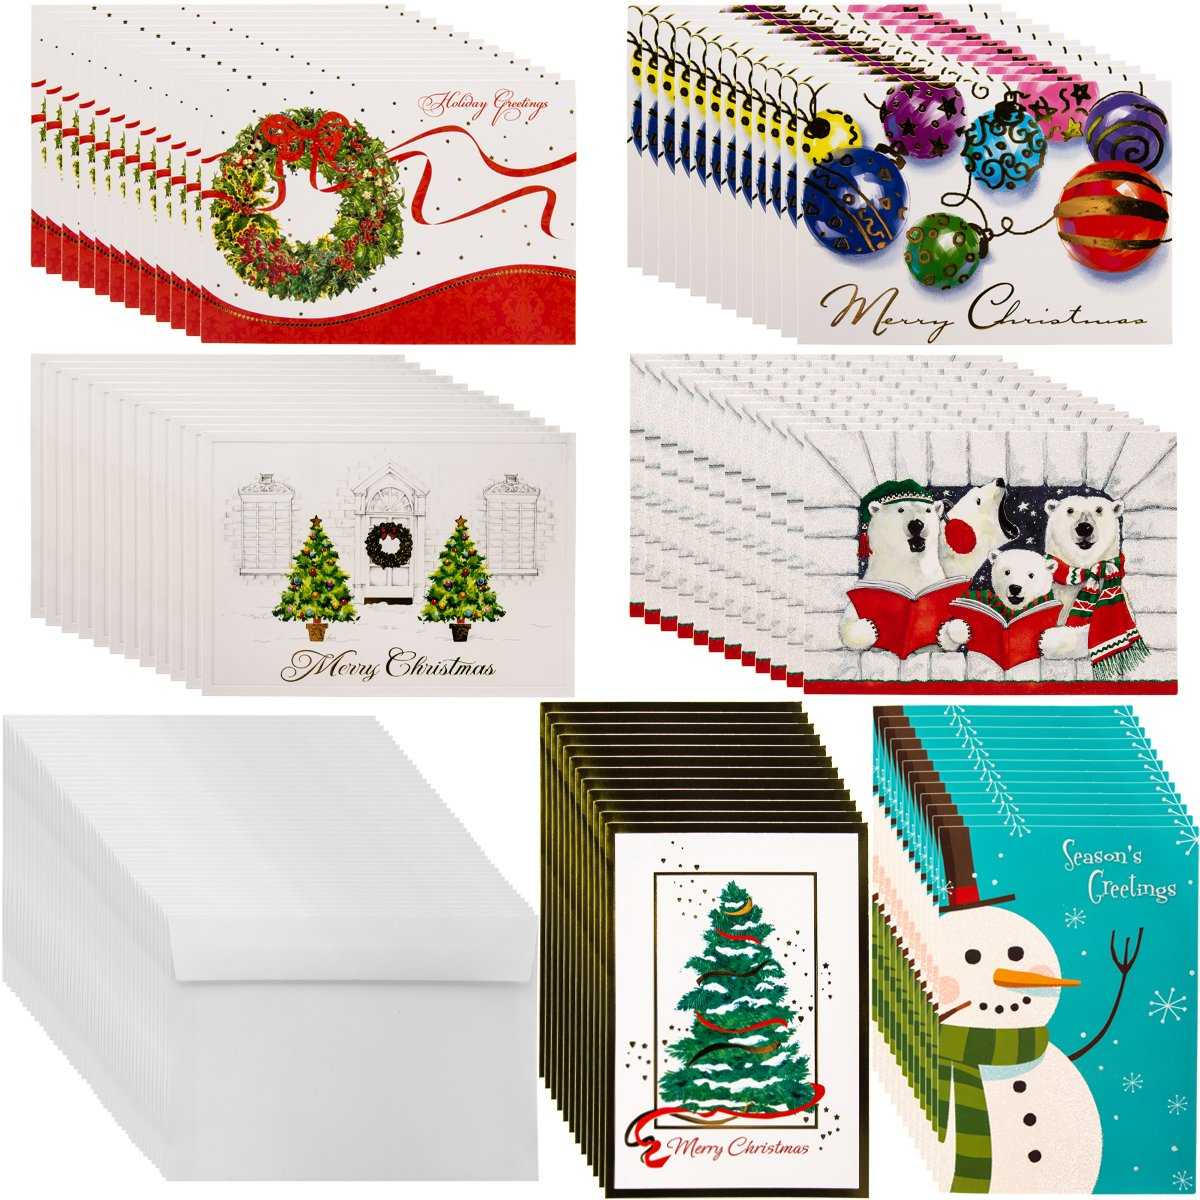 Amazon.com : Designer Greetings (72ct) Holiday Cards & Envelopes ...